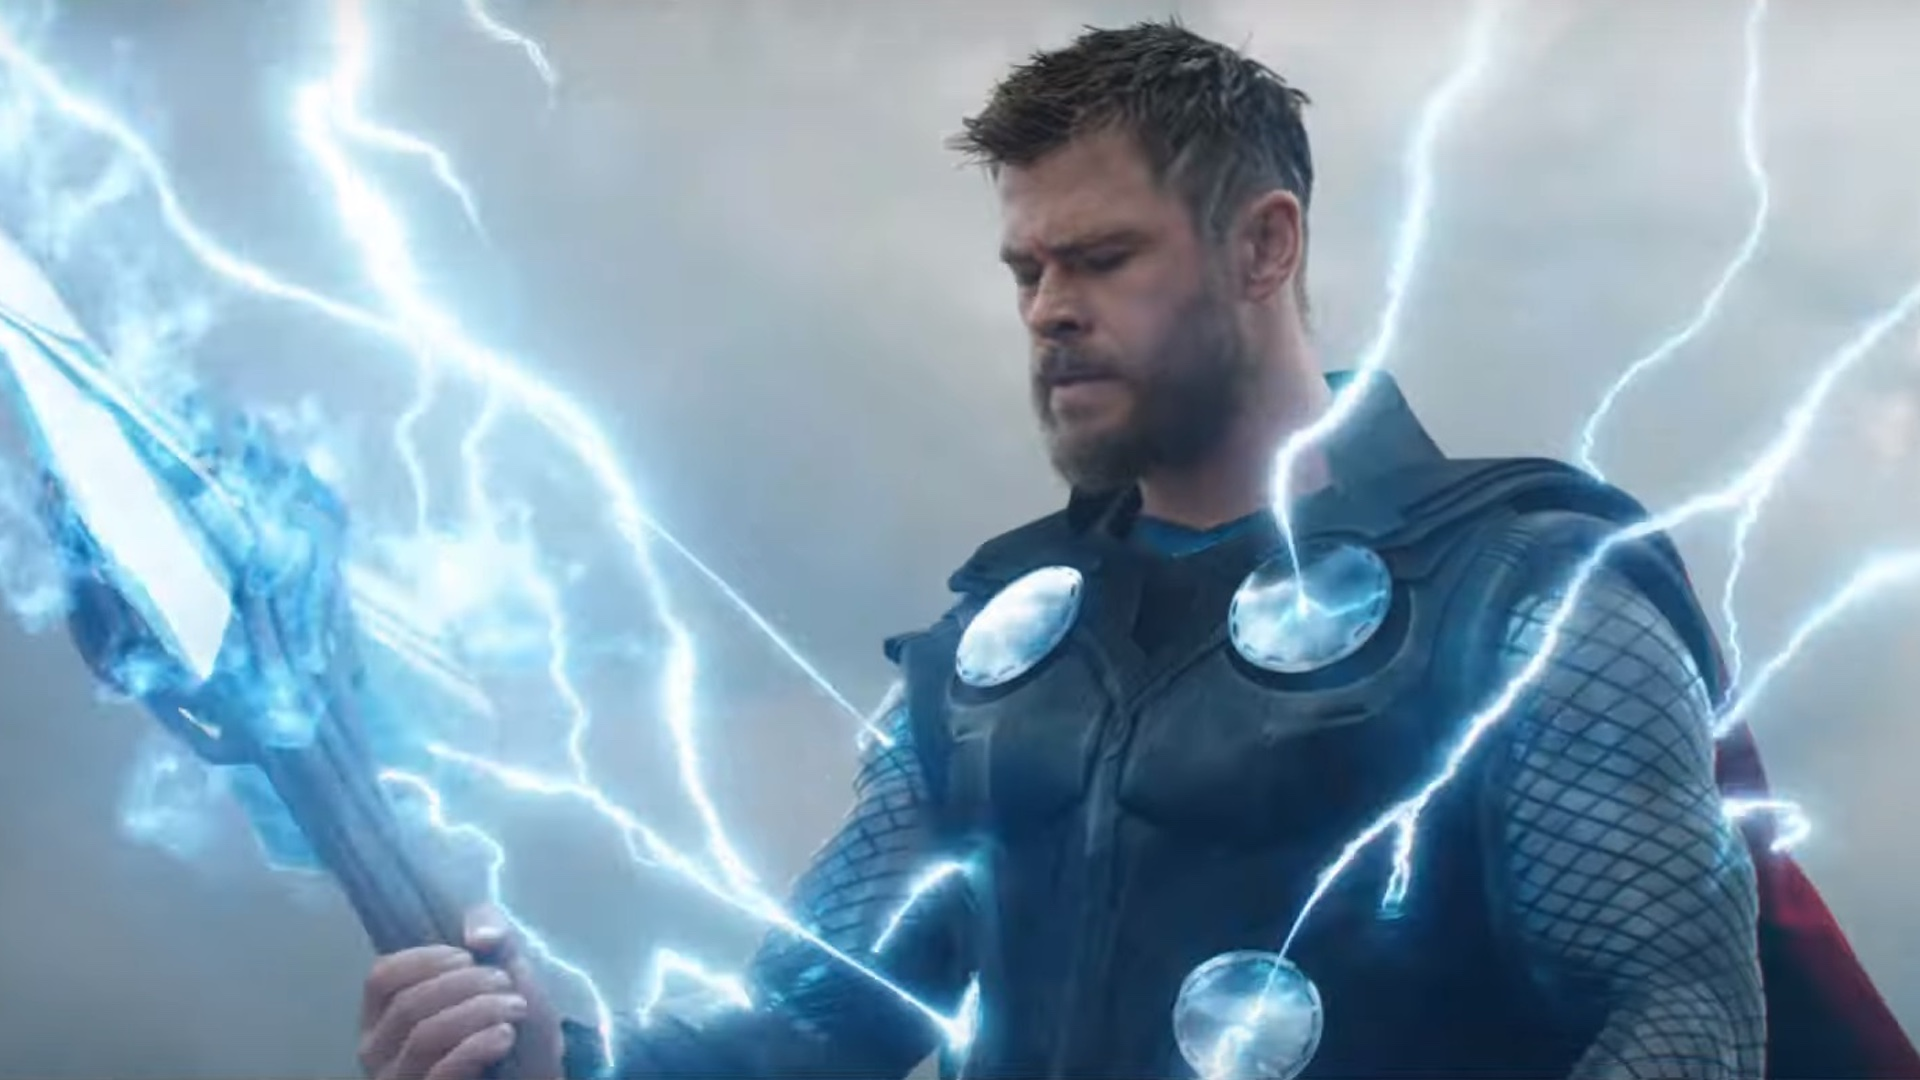 AVENGERS ENDGAME Gets a Fantastic Anime Style Opening Credits 1920x1080